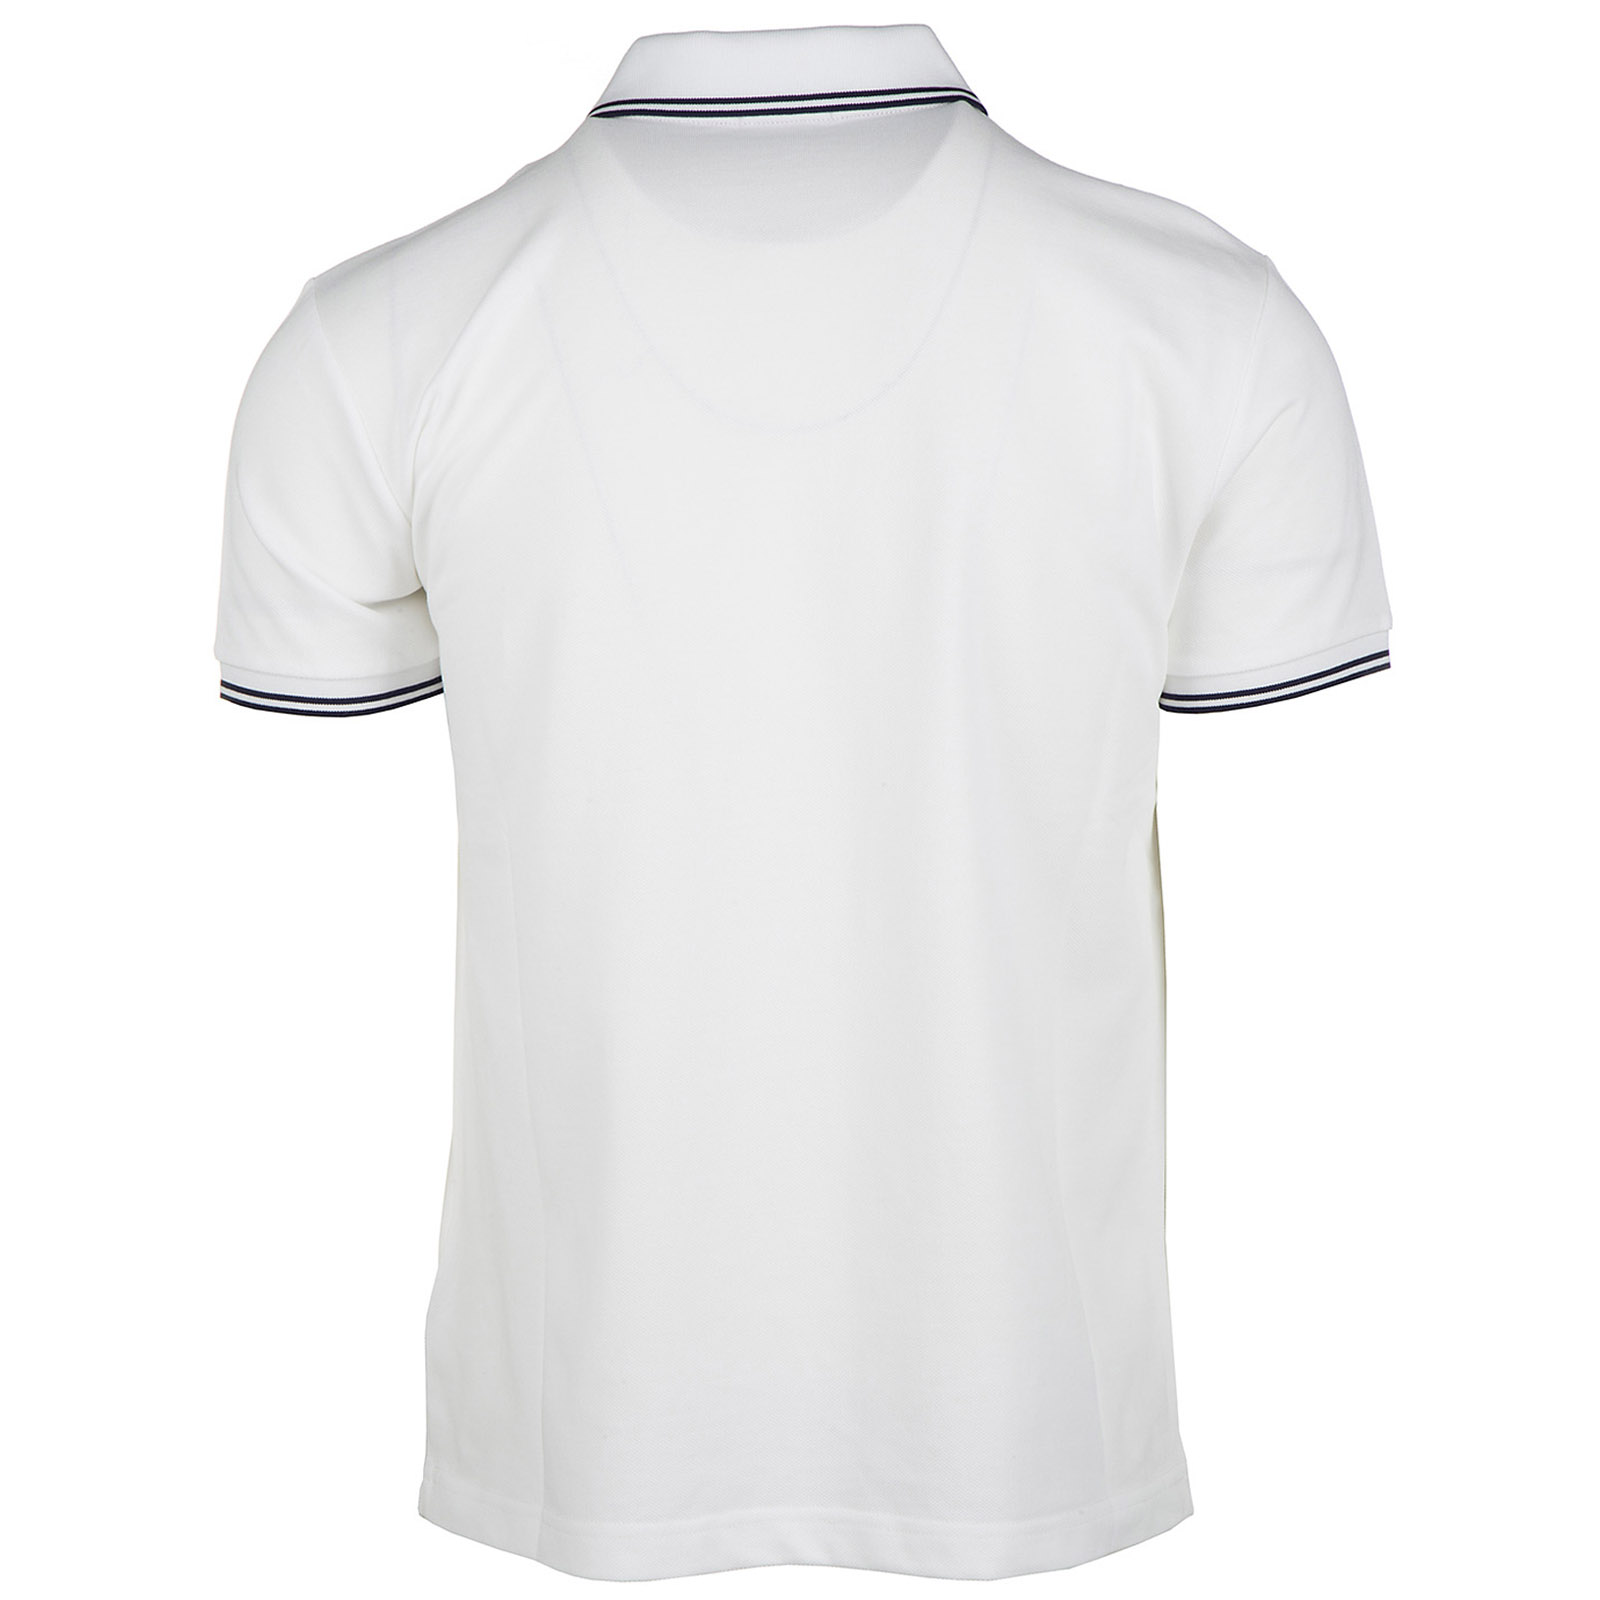 Collar Polo Men's Sleeve Short Shirt T wqCXPFA